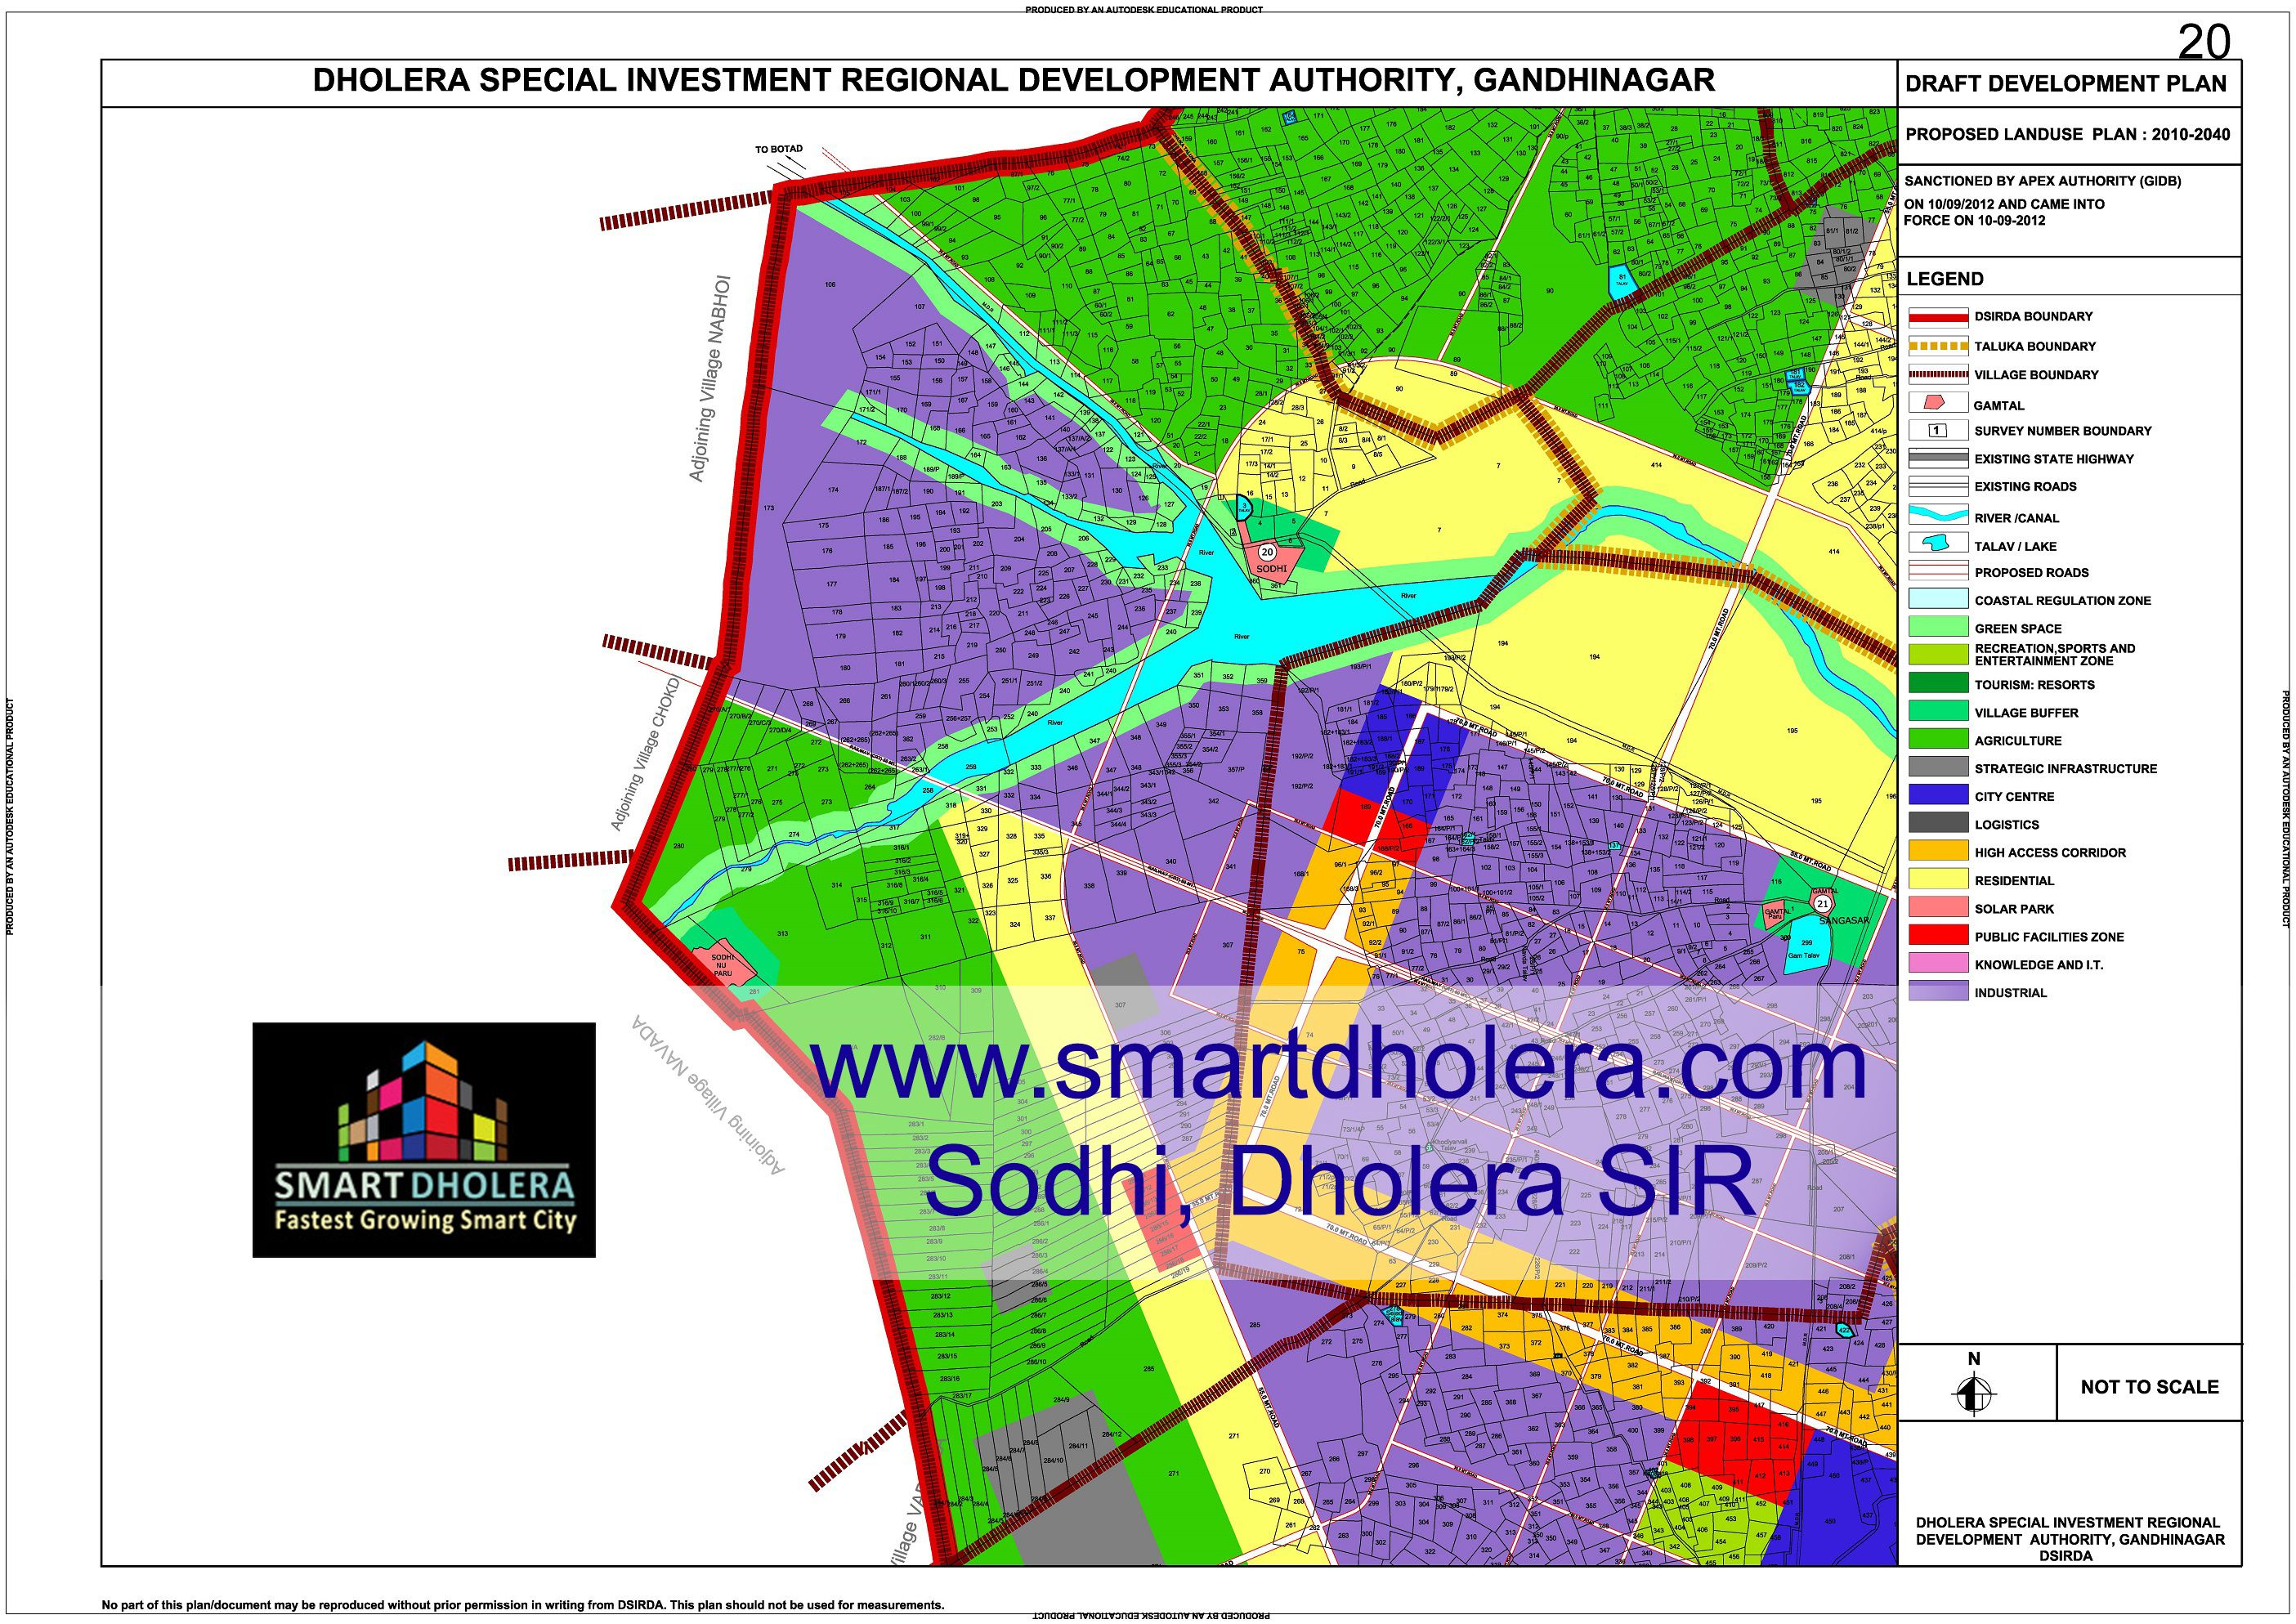 Map Of Sodhi Dholera SIR Map Of Dholera SIR Pinterest Smart - Plot cities on a map